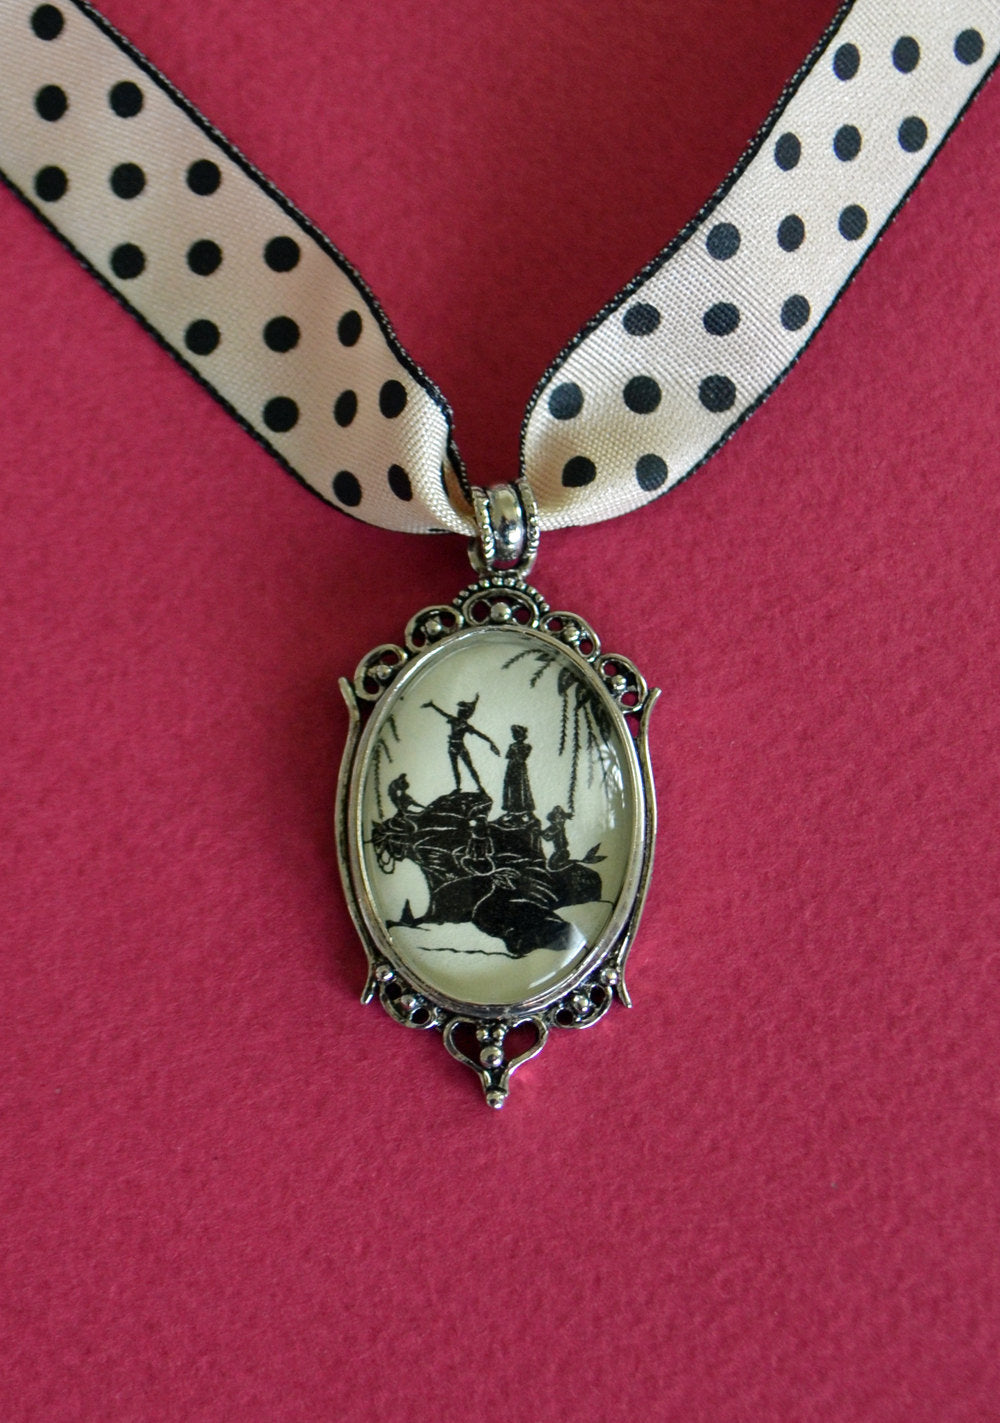 PETER PAN and the MERMAIDS Choker Necklace - pendant on ribbon - Silhouette Jewelry